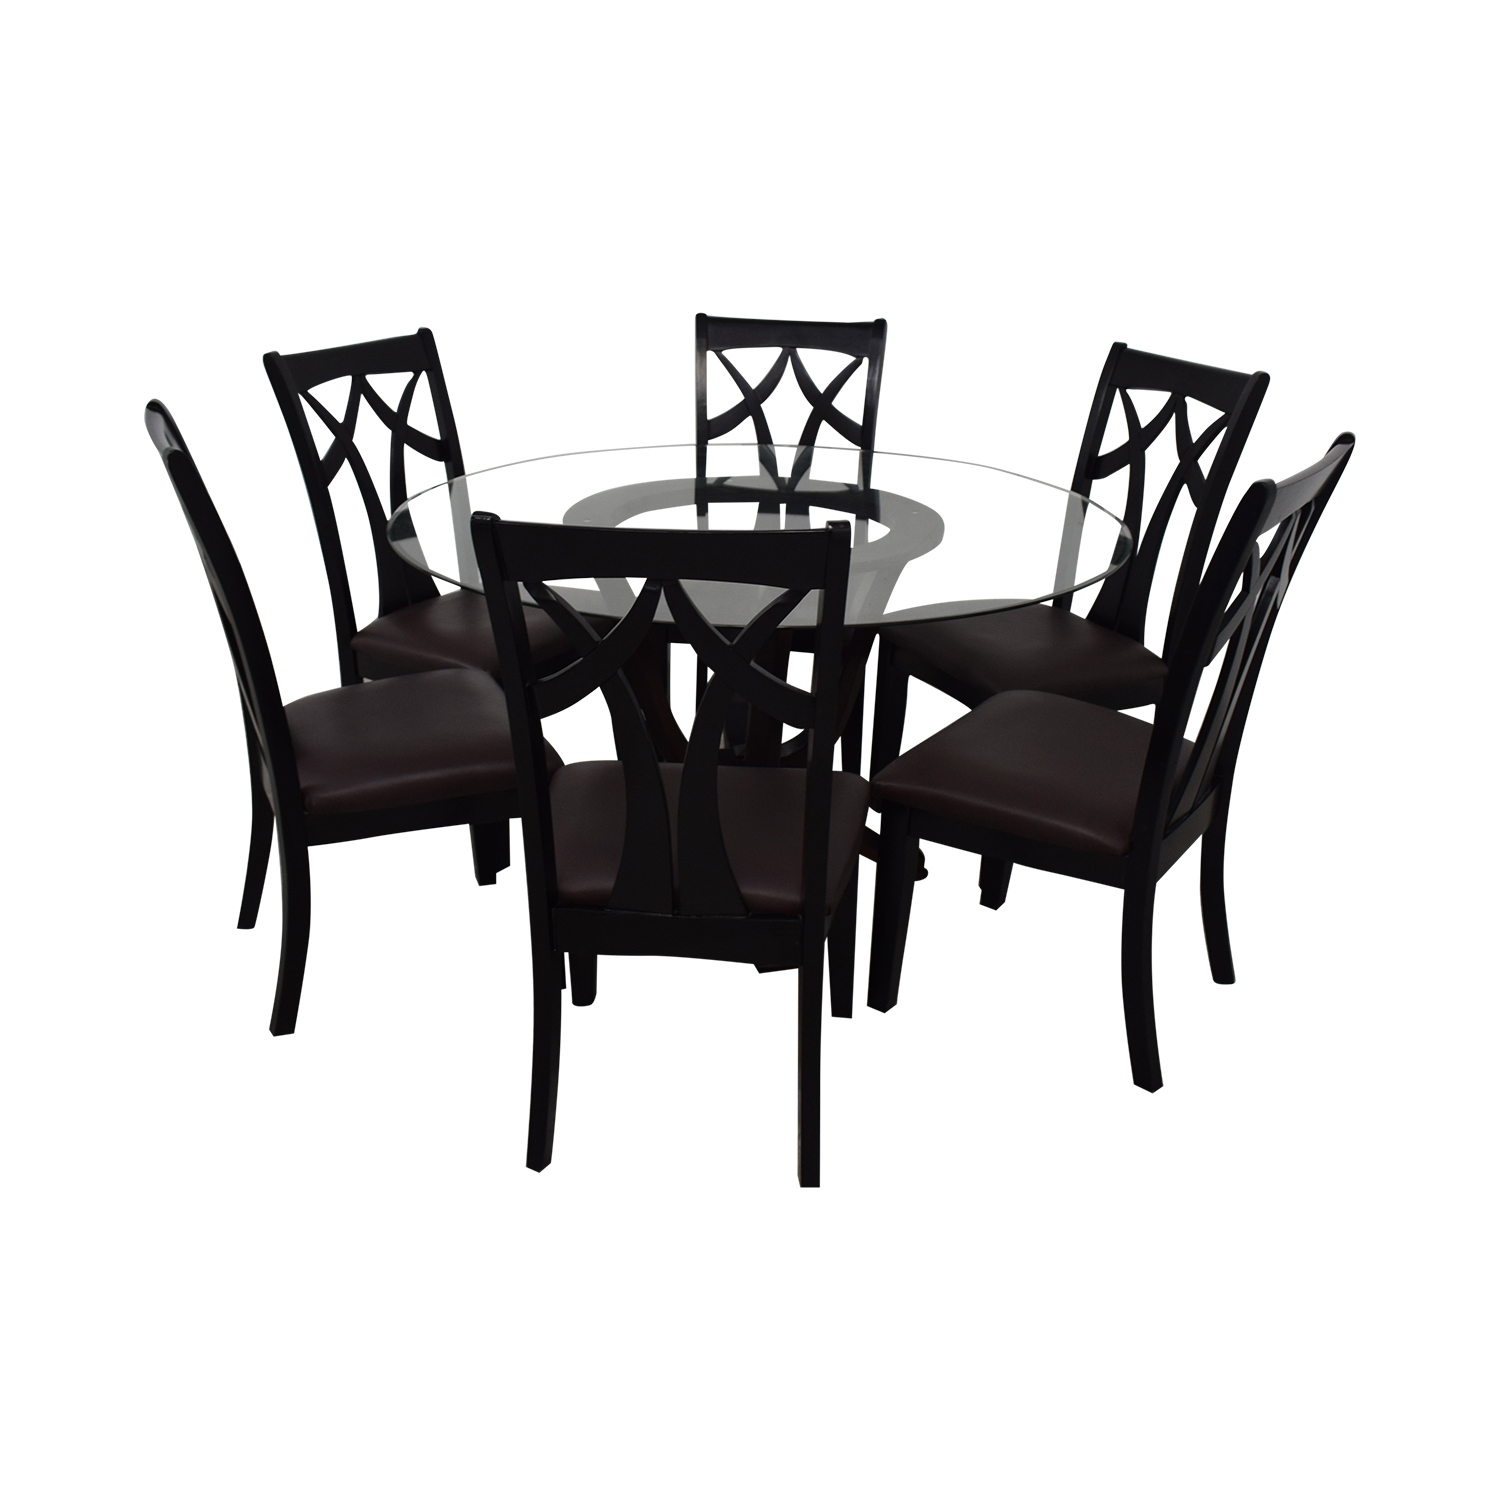 Raymour & Flanigan Contemporary Style Round Table With Six chairs sale